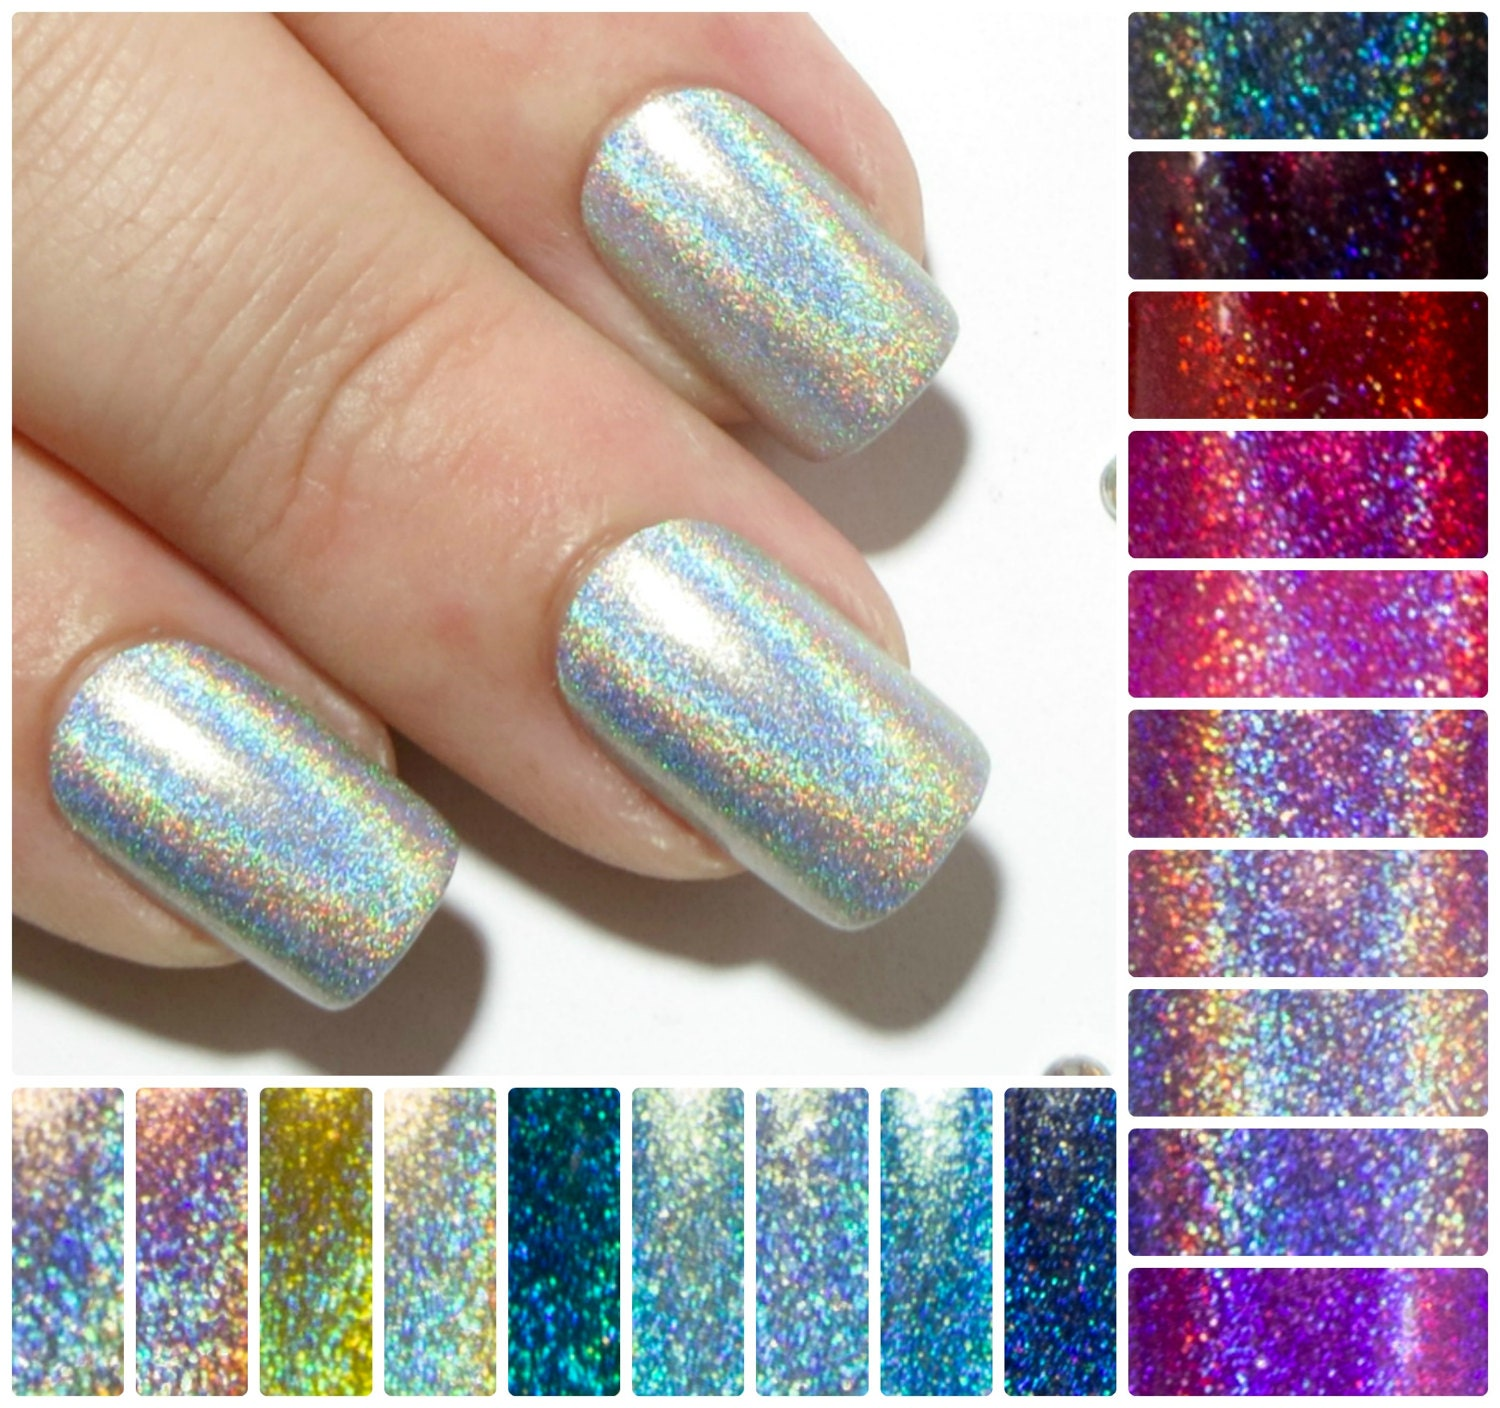 Square Fake Nails - Holographic False Nails - Short Press On Nails ...